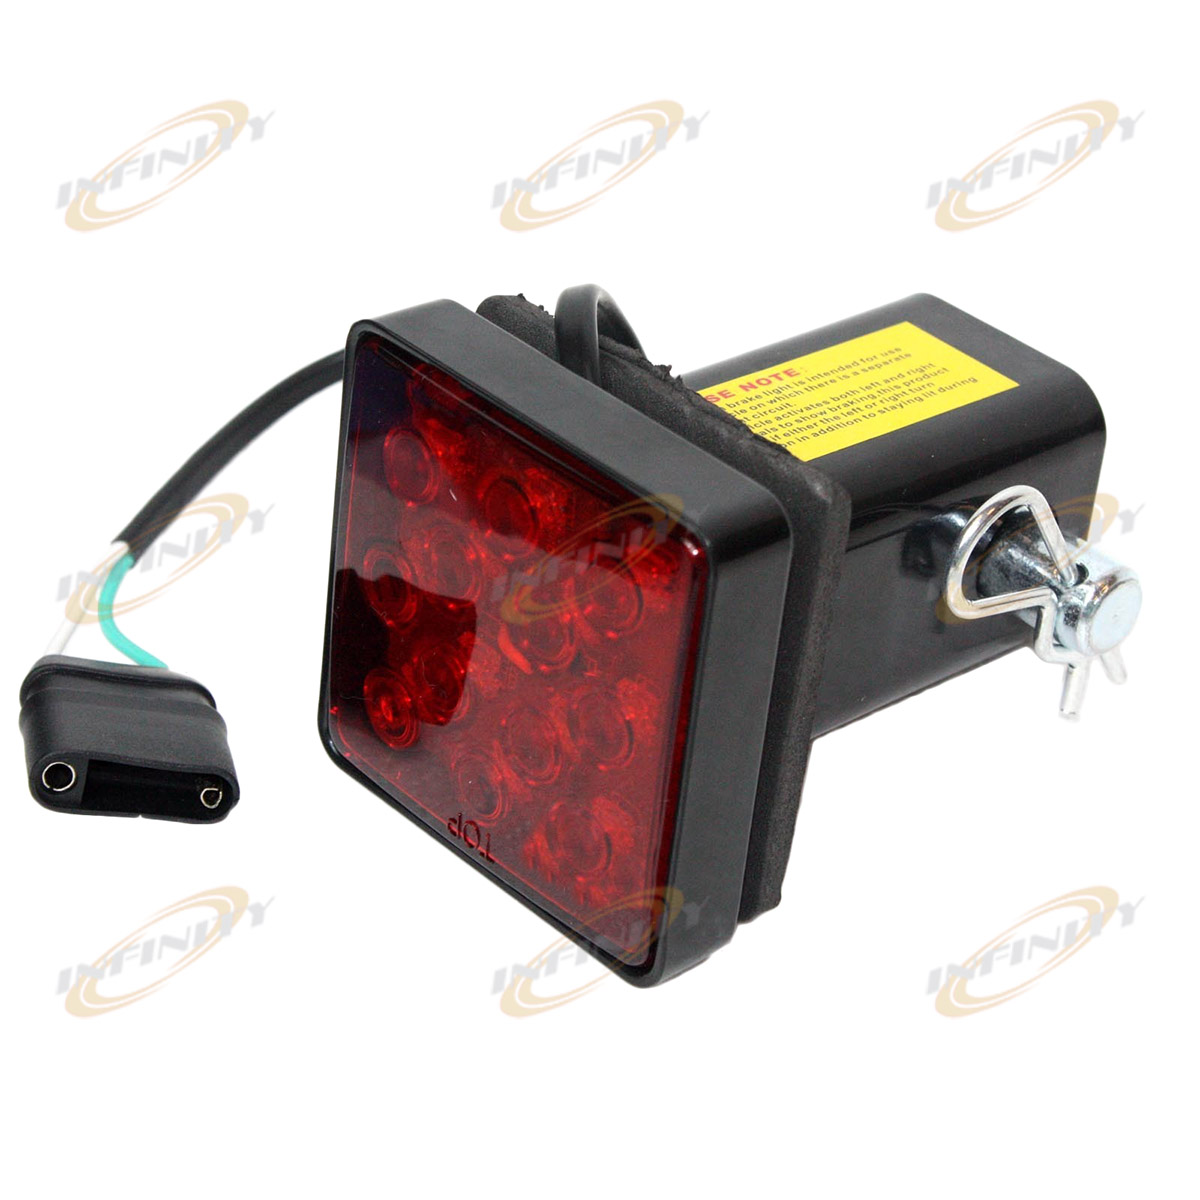 7mx8m Chevrolet Silverado Brake Lights Dont Work Changed additionally Question 32475 furthermore Tow Hitch Light Connector also 517069600938907574 furthermore Gmc Sierra Trailer Wiring Harness Connector. on 7 way trailer plug wiring diagram chevy tahoe